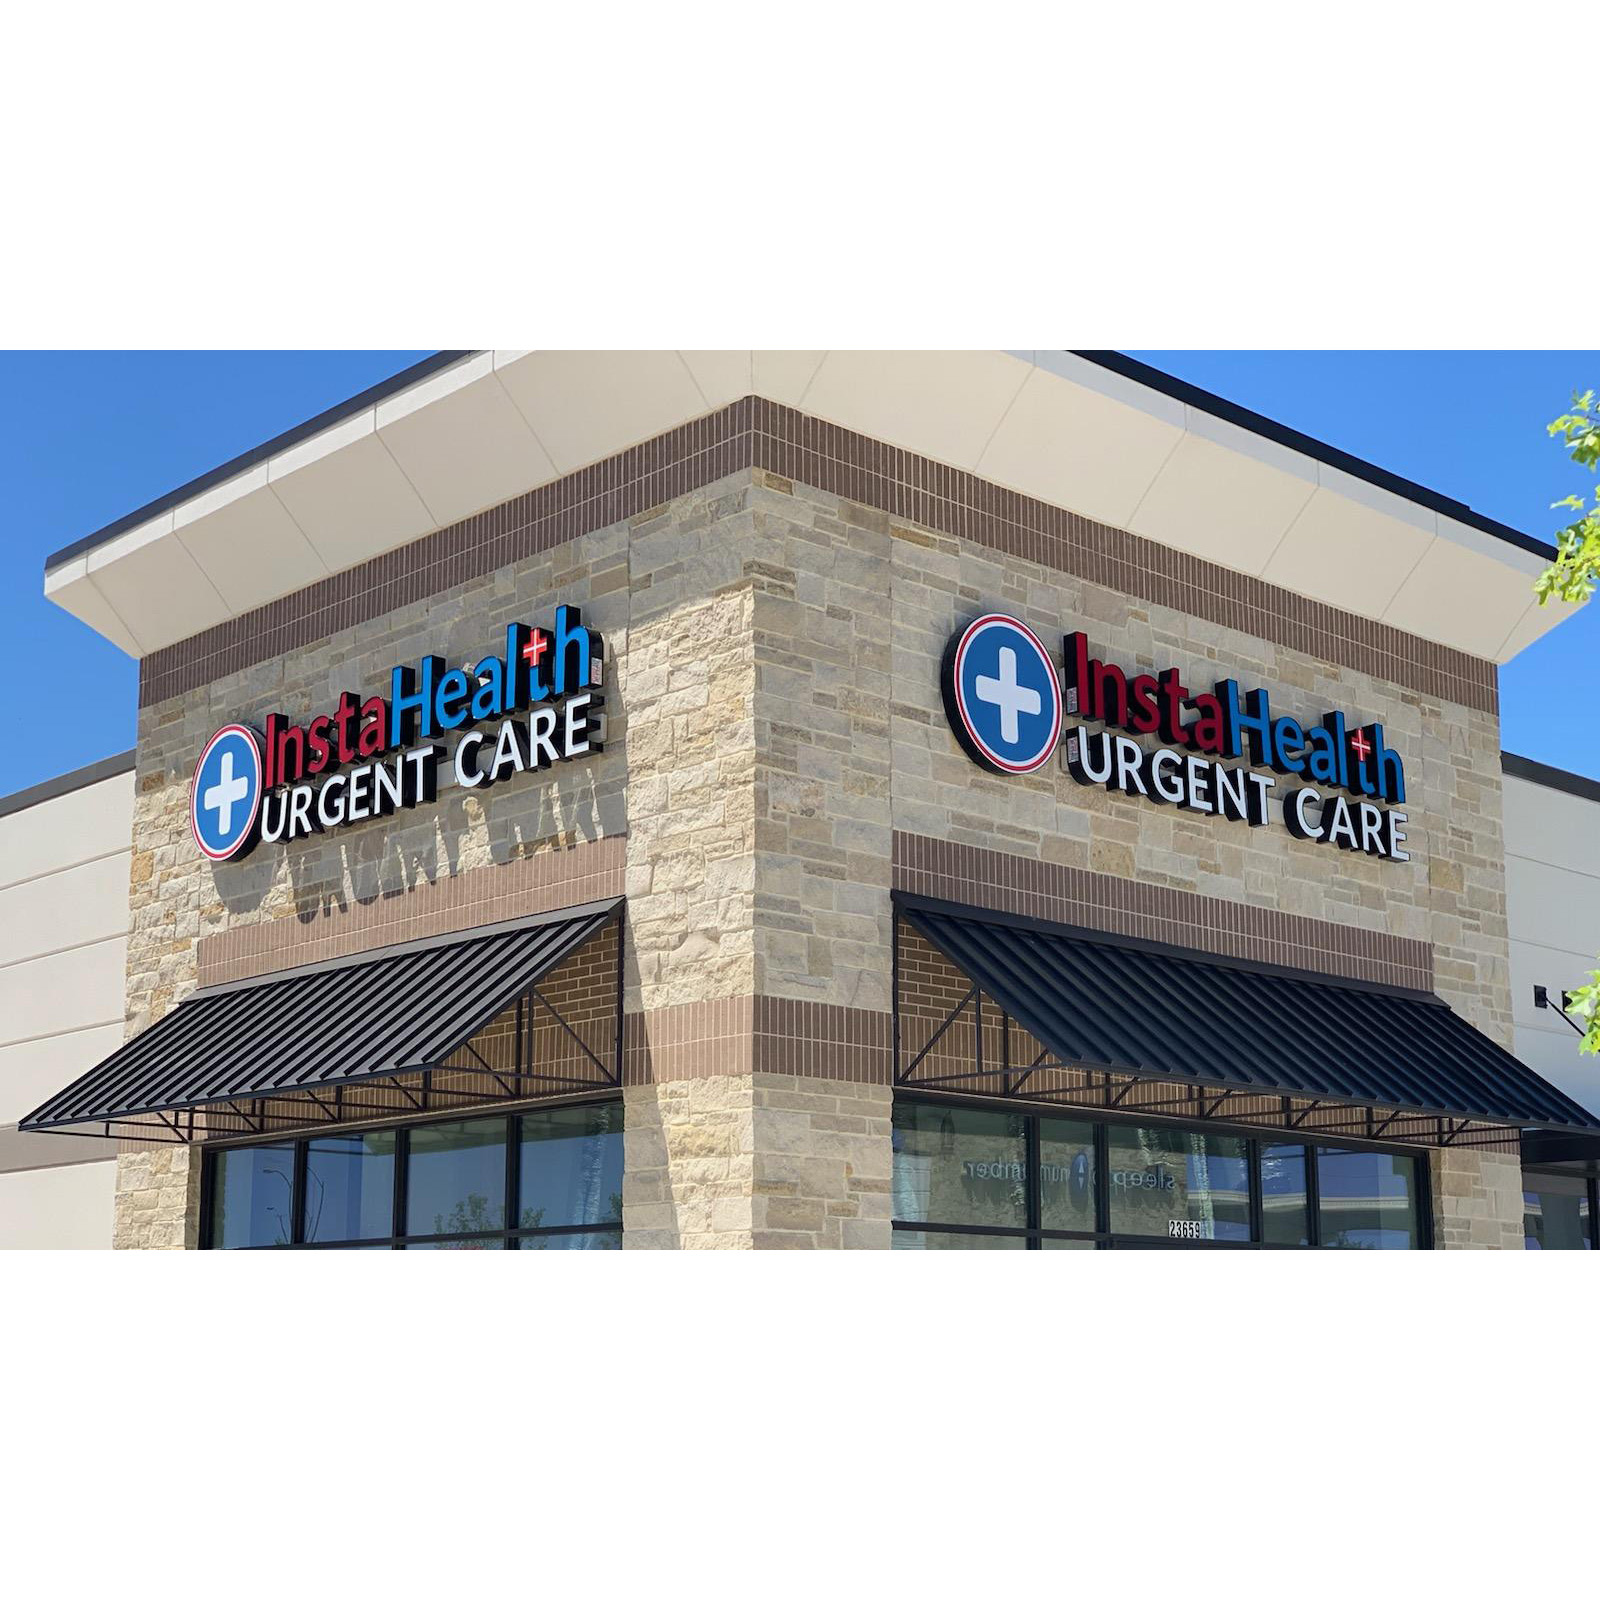 InstaHealth Urgent Care (Katy, TX) - #0